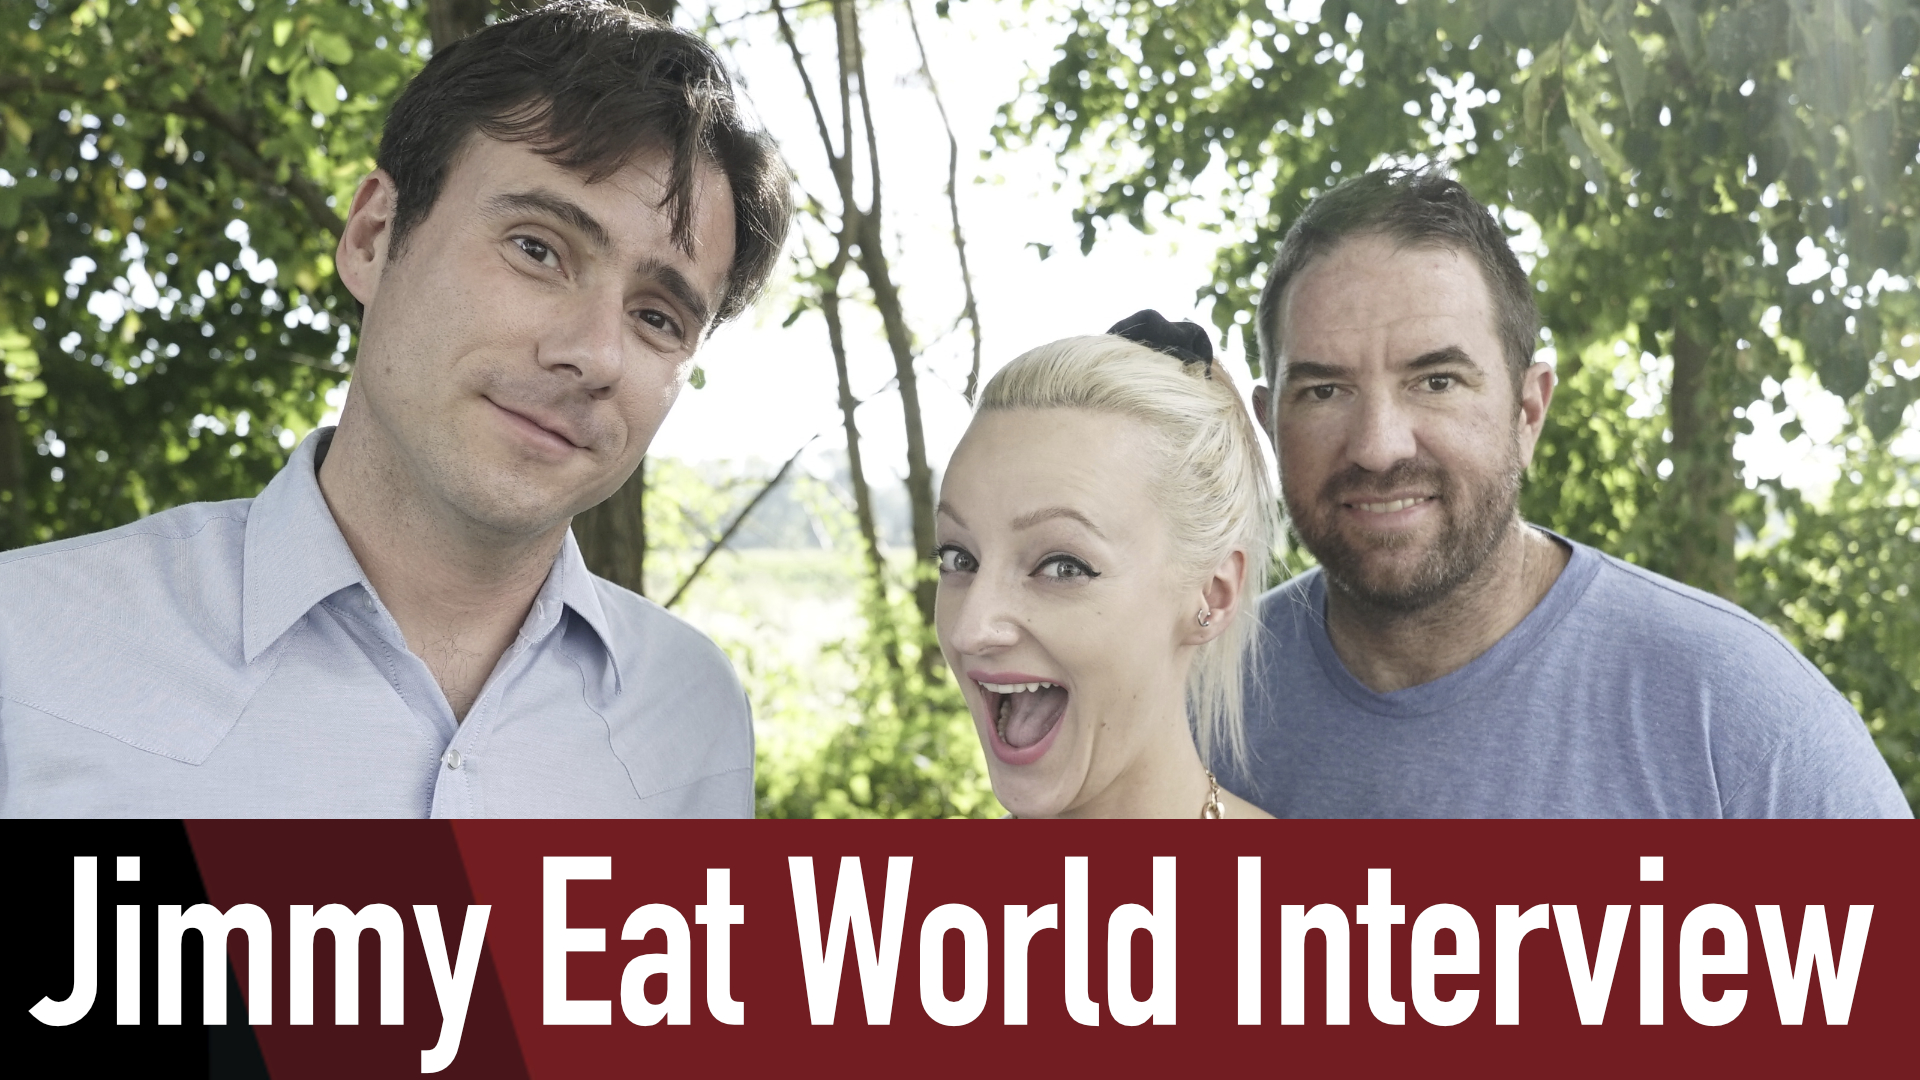 Jim Adkins und Zach Lind von Jimmy Eat World im exklusiven Interview!